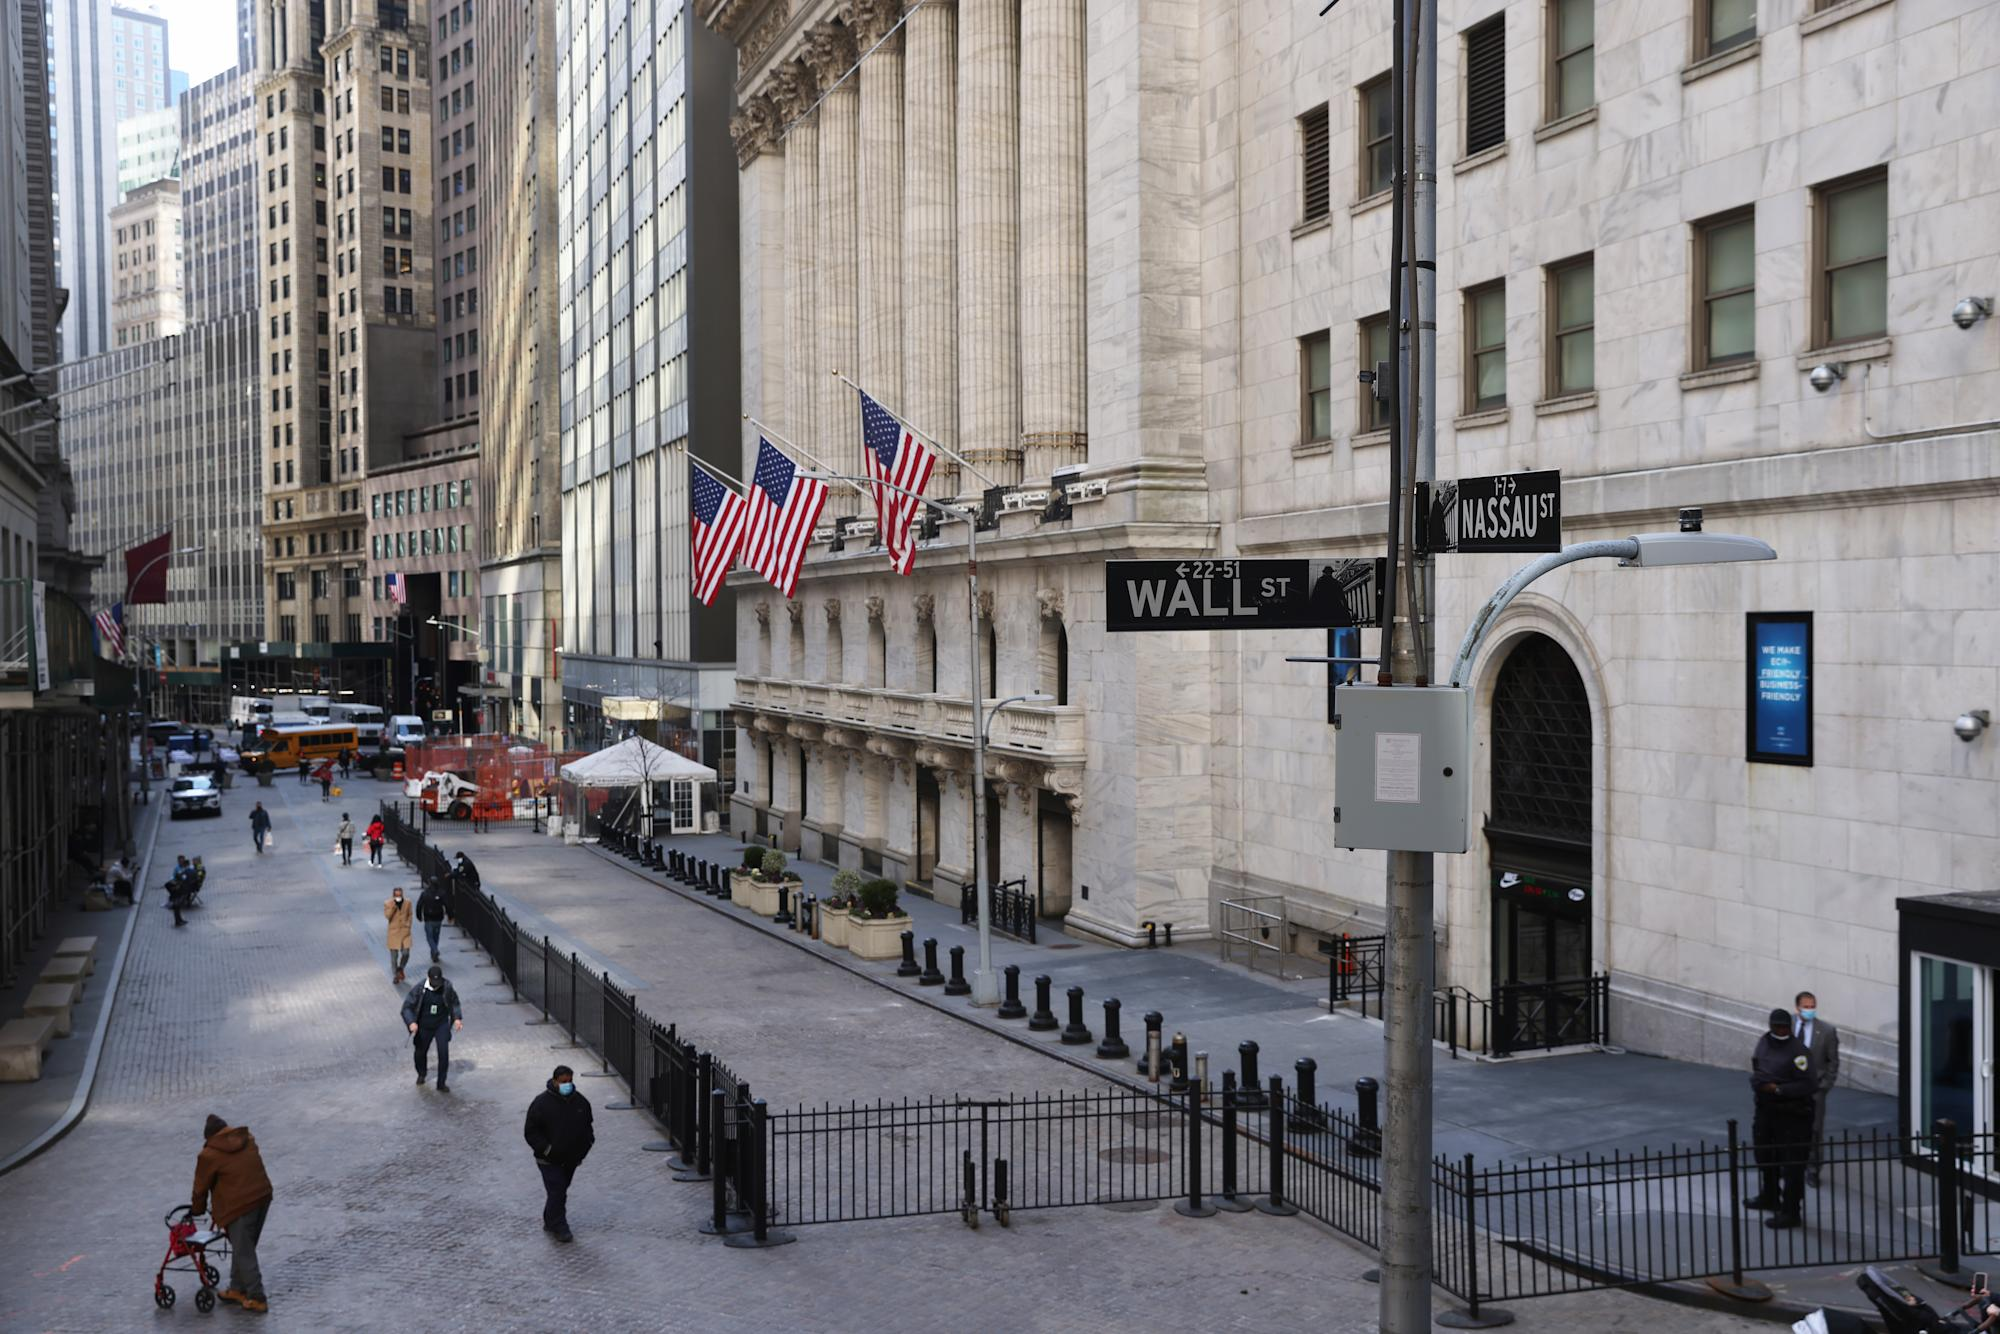 Stock market news live updates: Stock futures retreat after S&P 500 logs new record high – Yahoo Finance